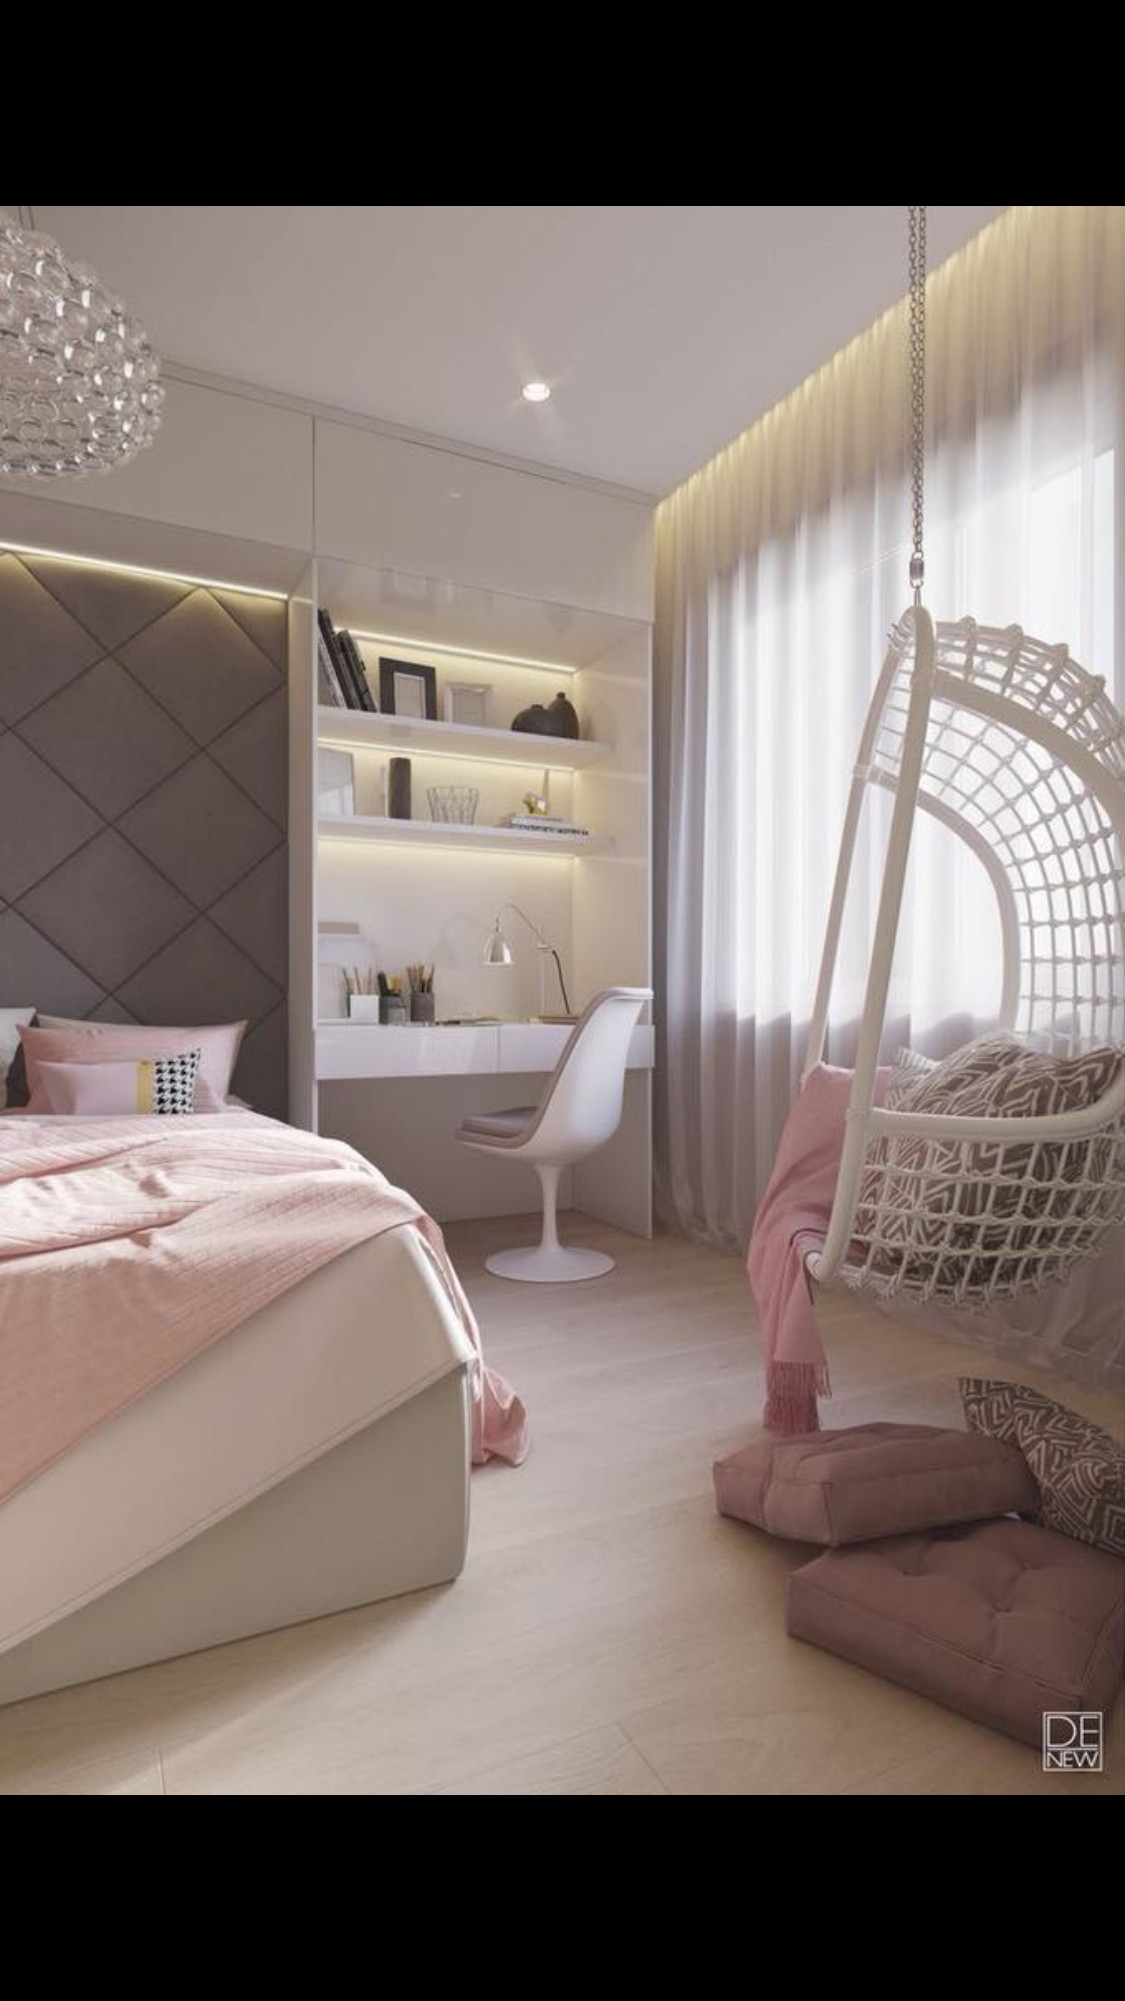 Girls Teenagers Bedroom Ideas Inspirational My Dream Room soon as I Secure This 💰